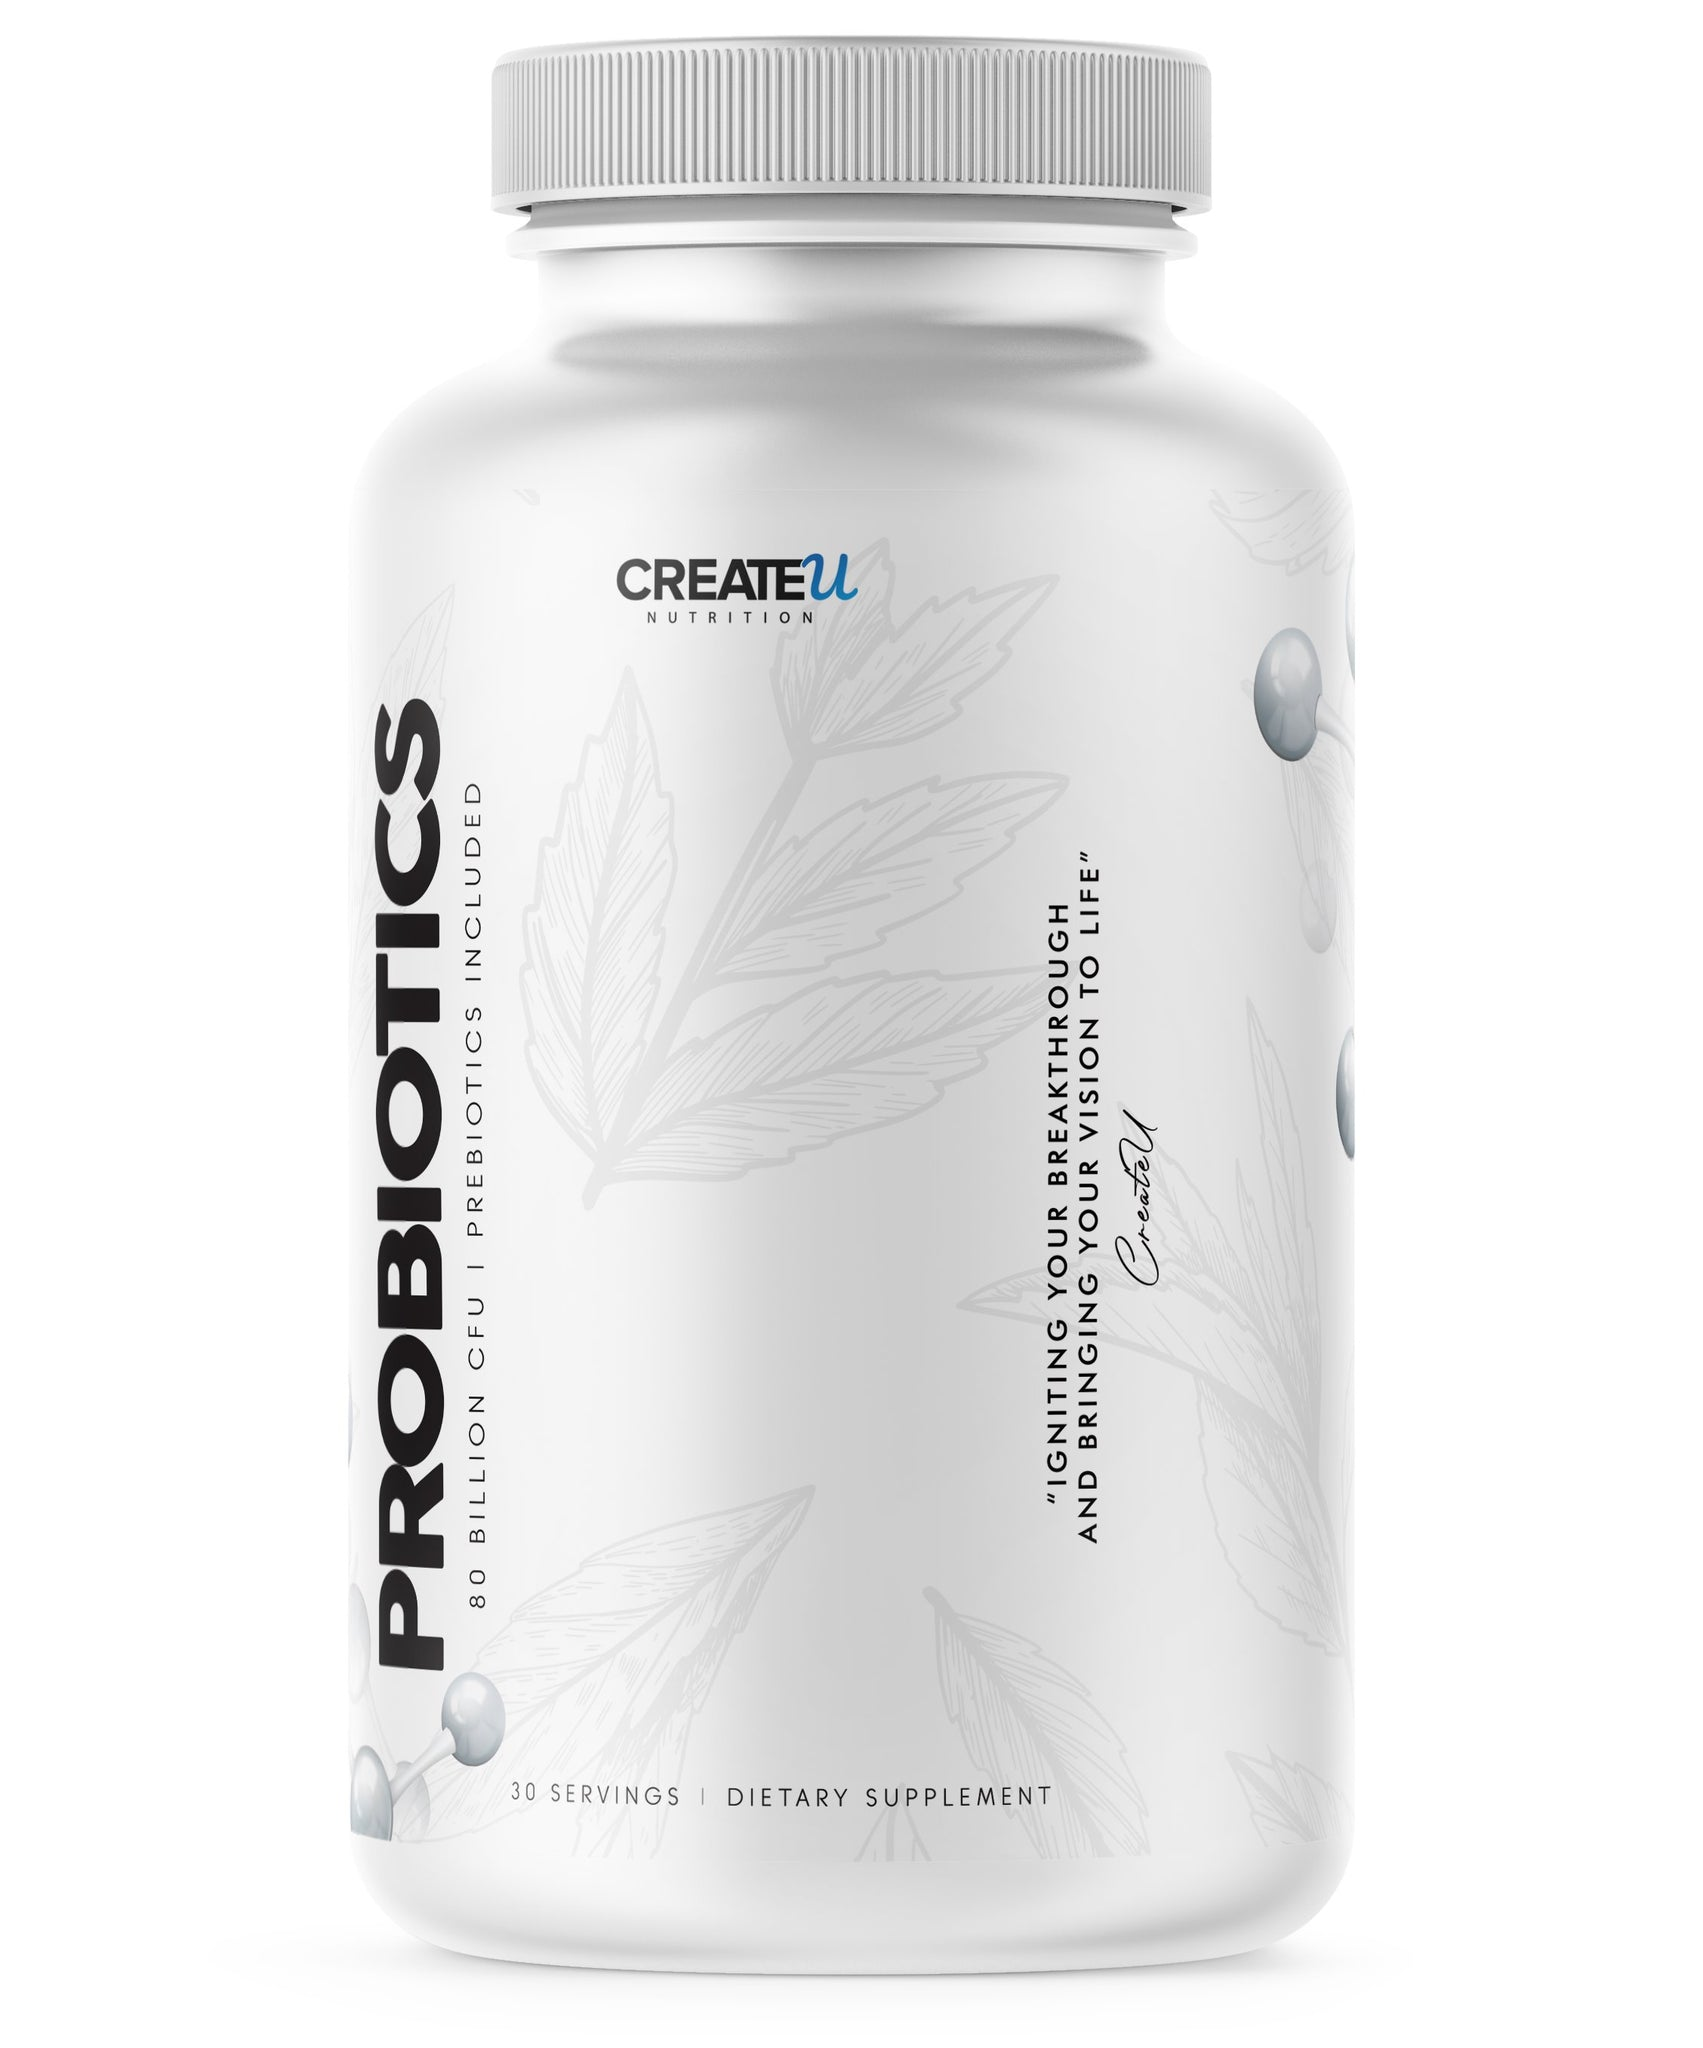 Chase - Probiotics supplement CreateUNutrition.com